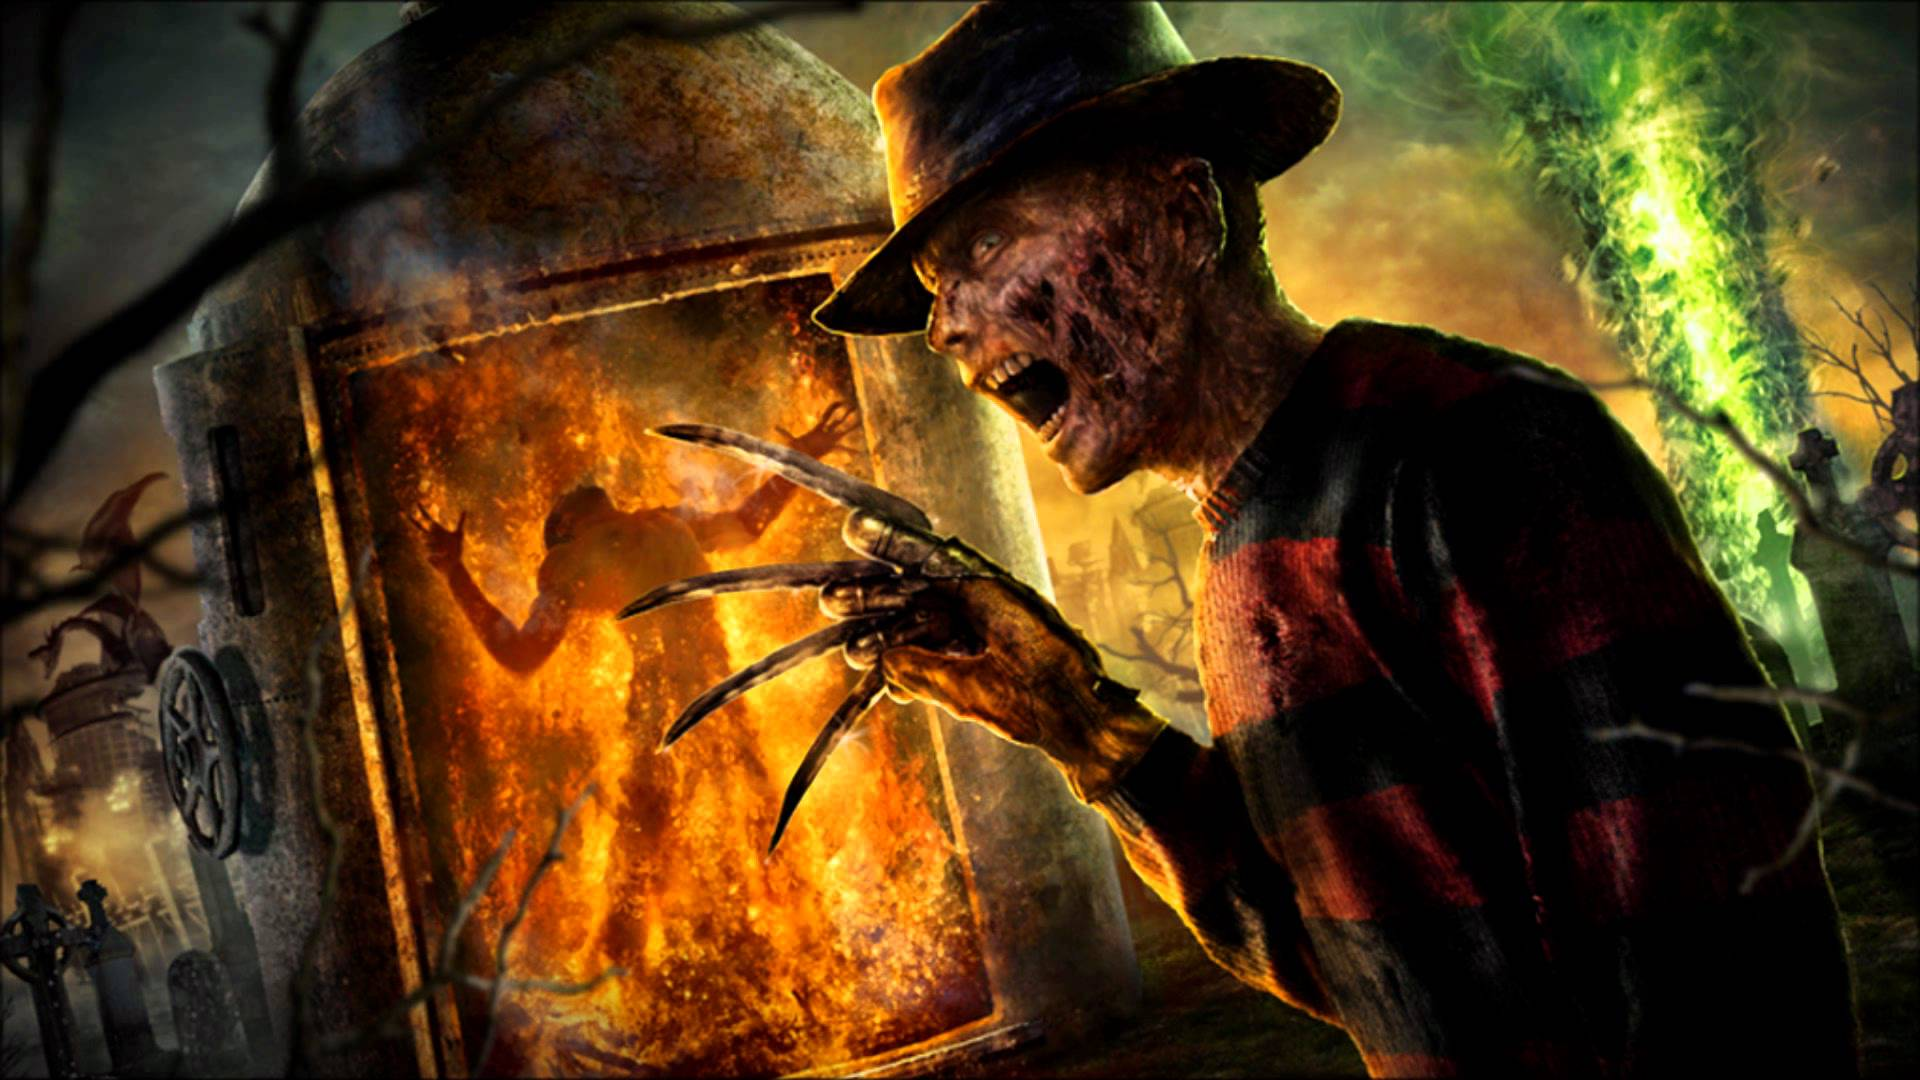 Freddy Krueger Wallpaper (70 Wallpapers) – HD Wallpapers